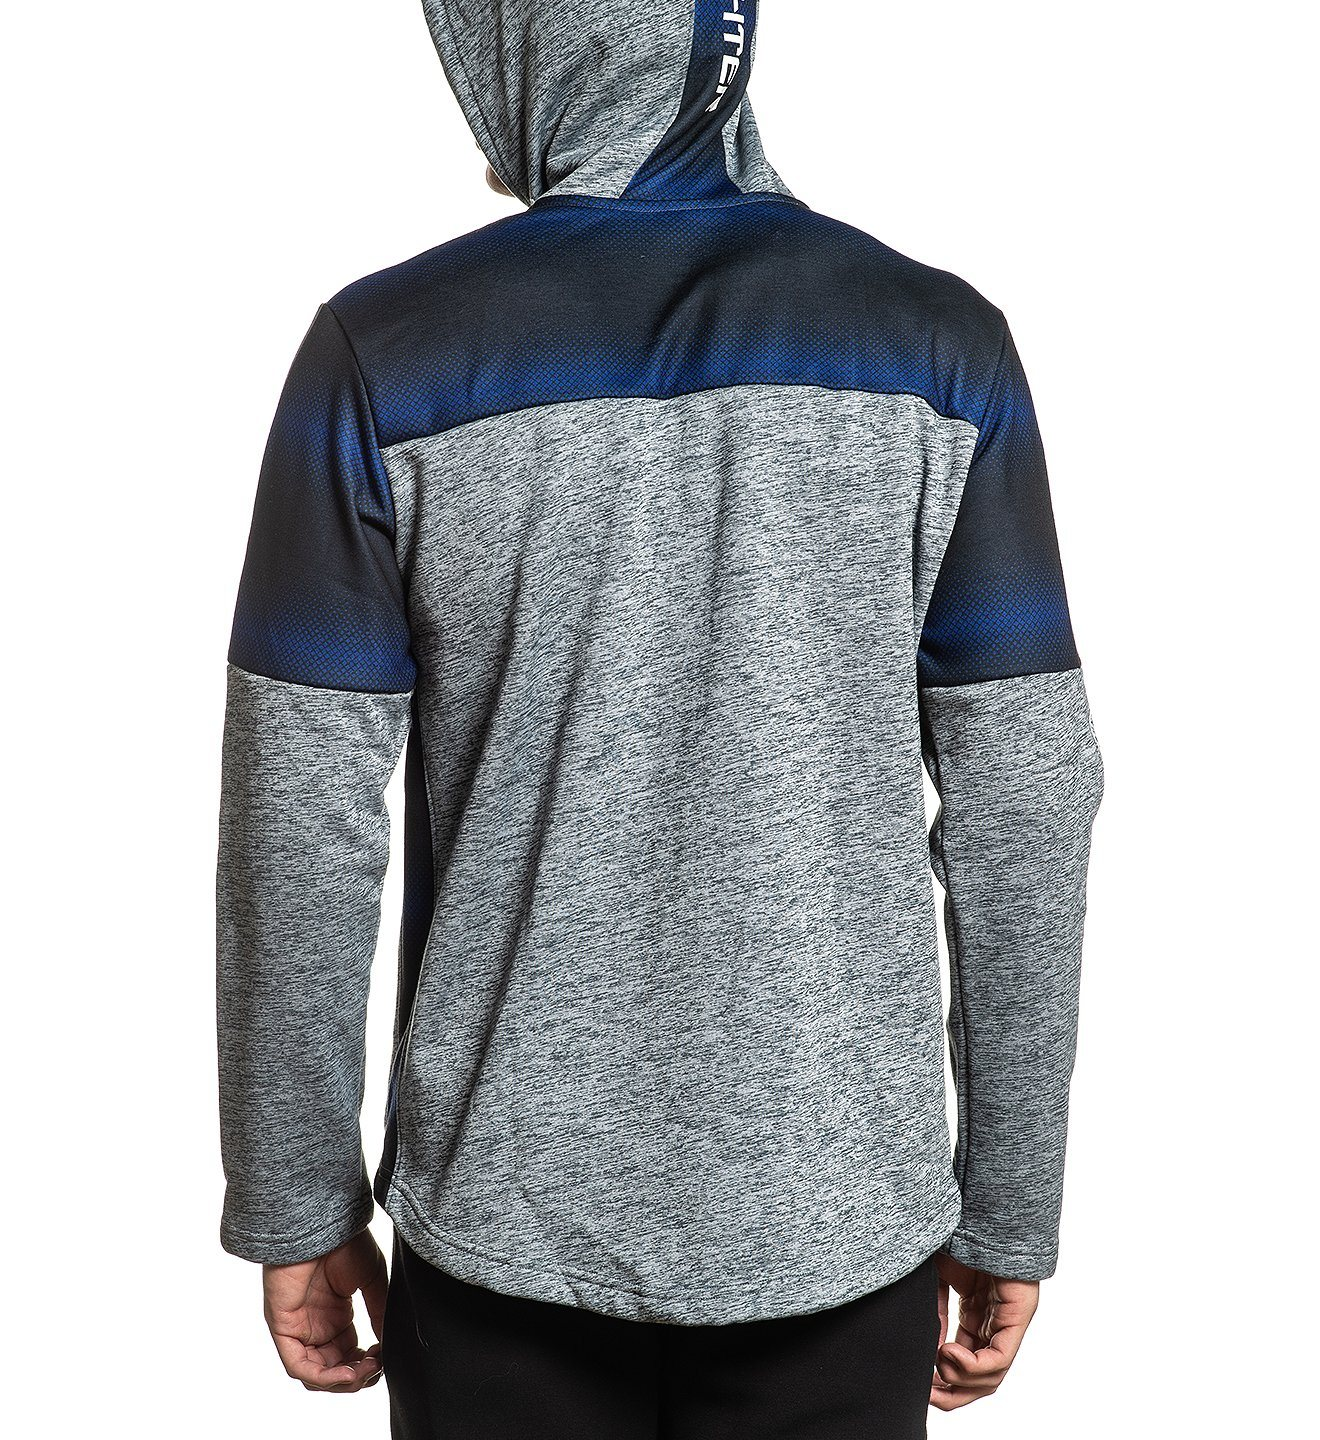 Clarkridge - Mens Hooded Sweatshirts - American Fighter